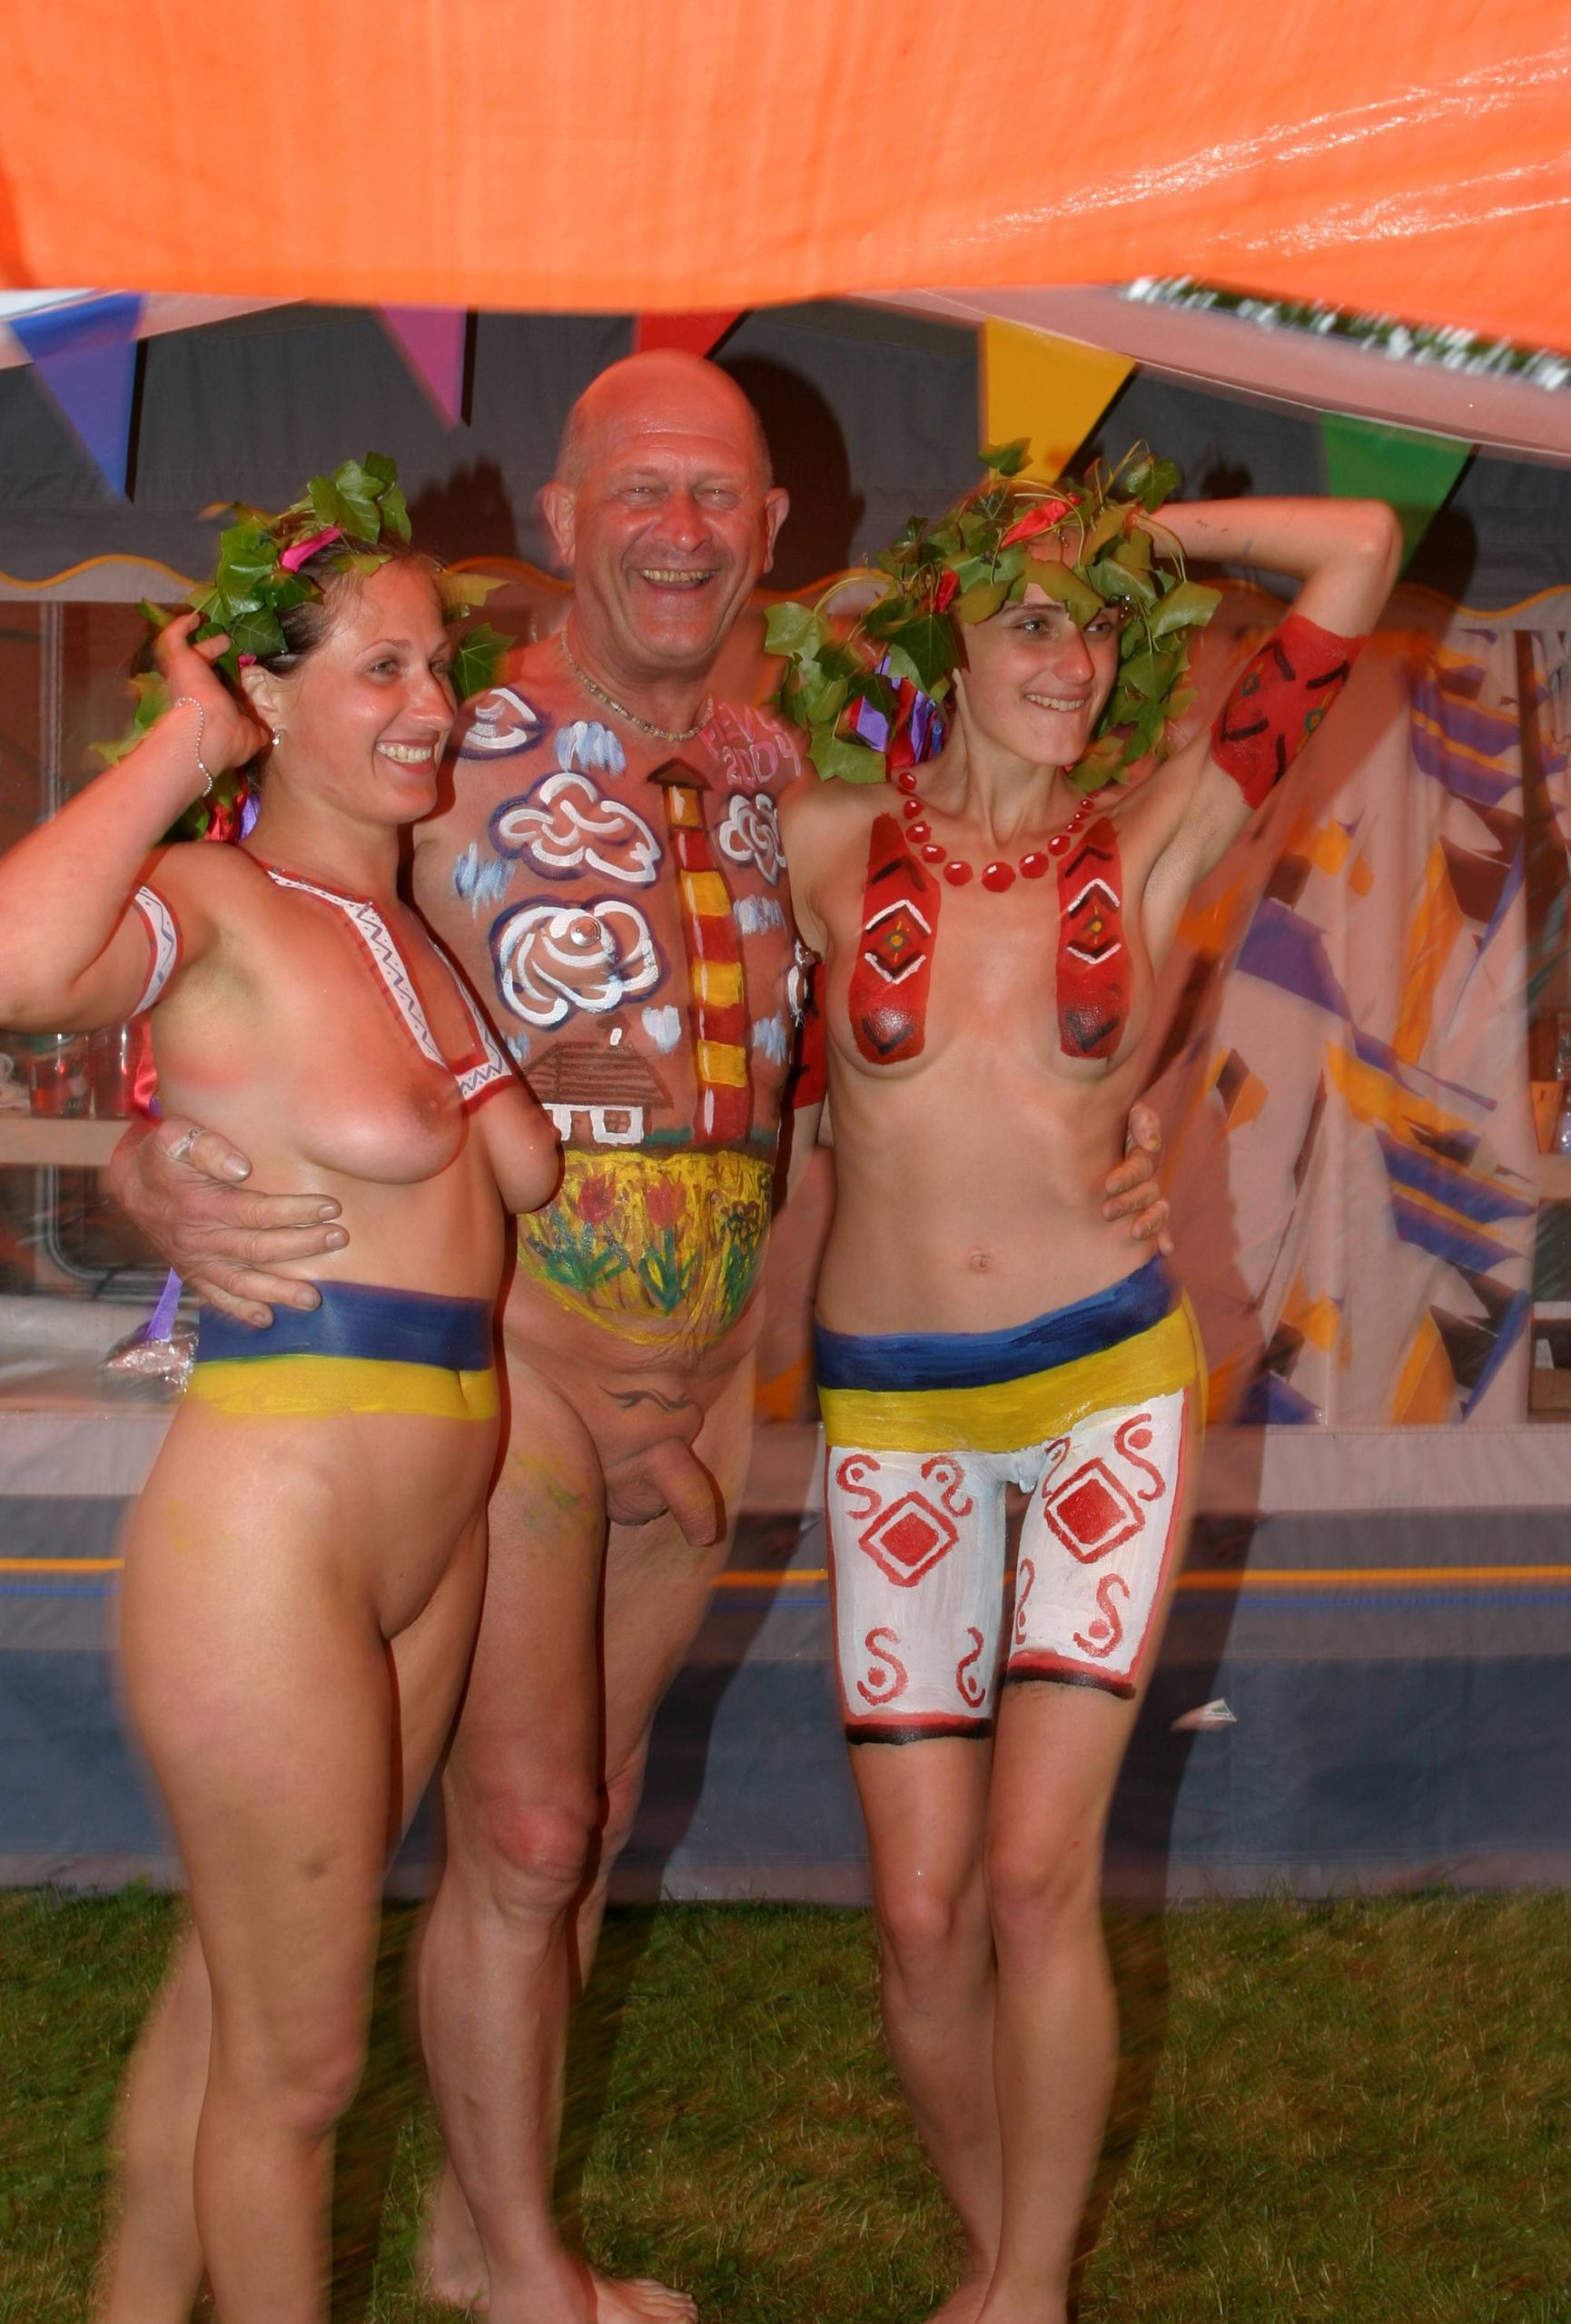 Pure Nudism Pics-Body Paints and Colors - 2